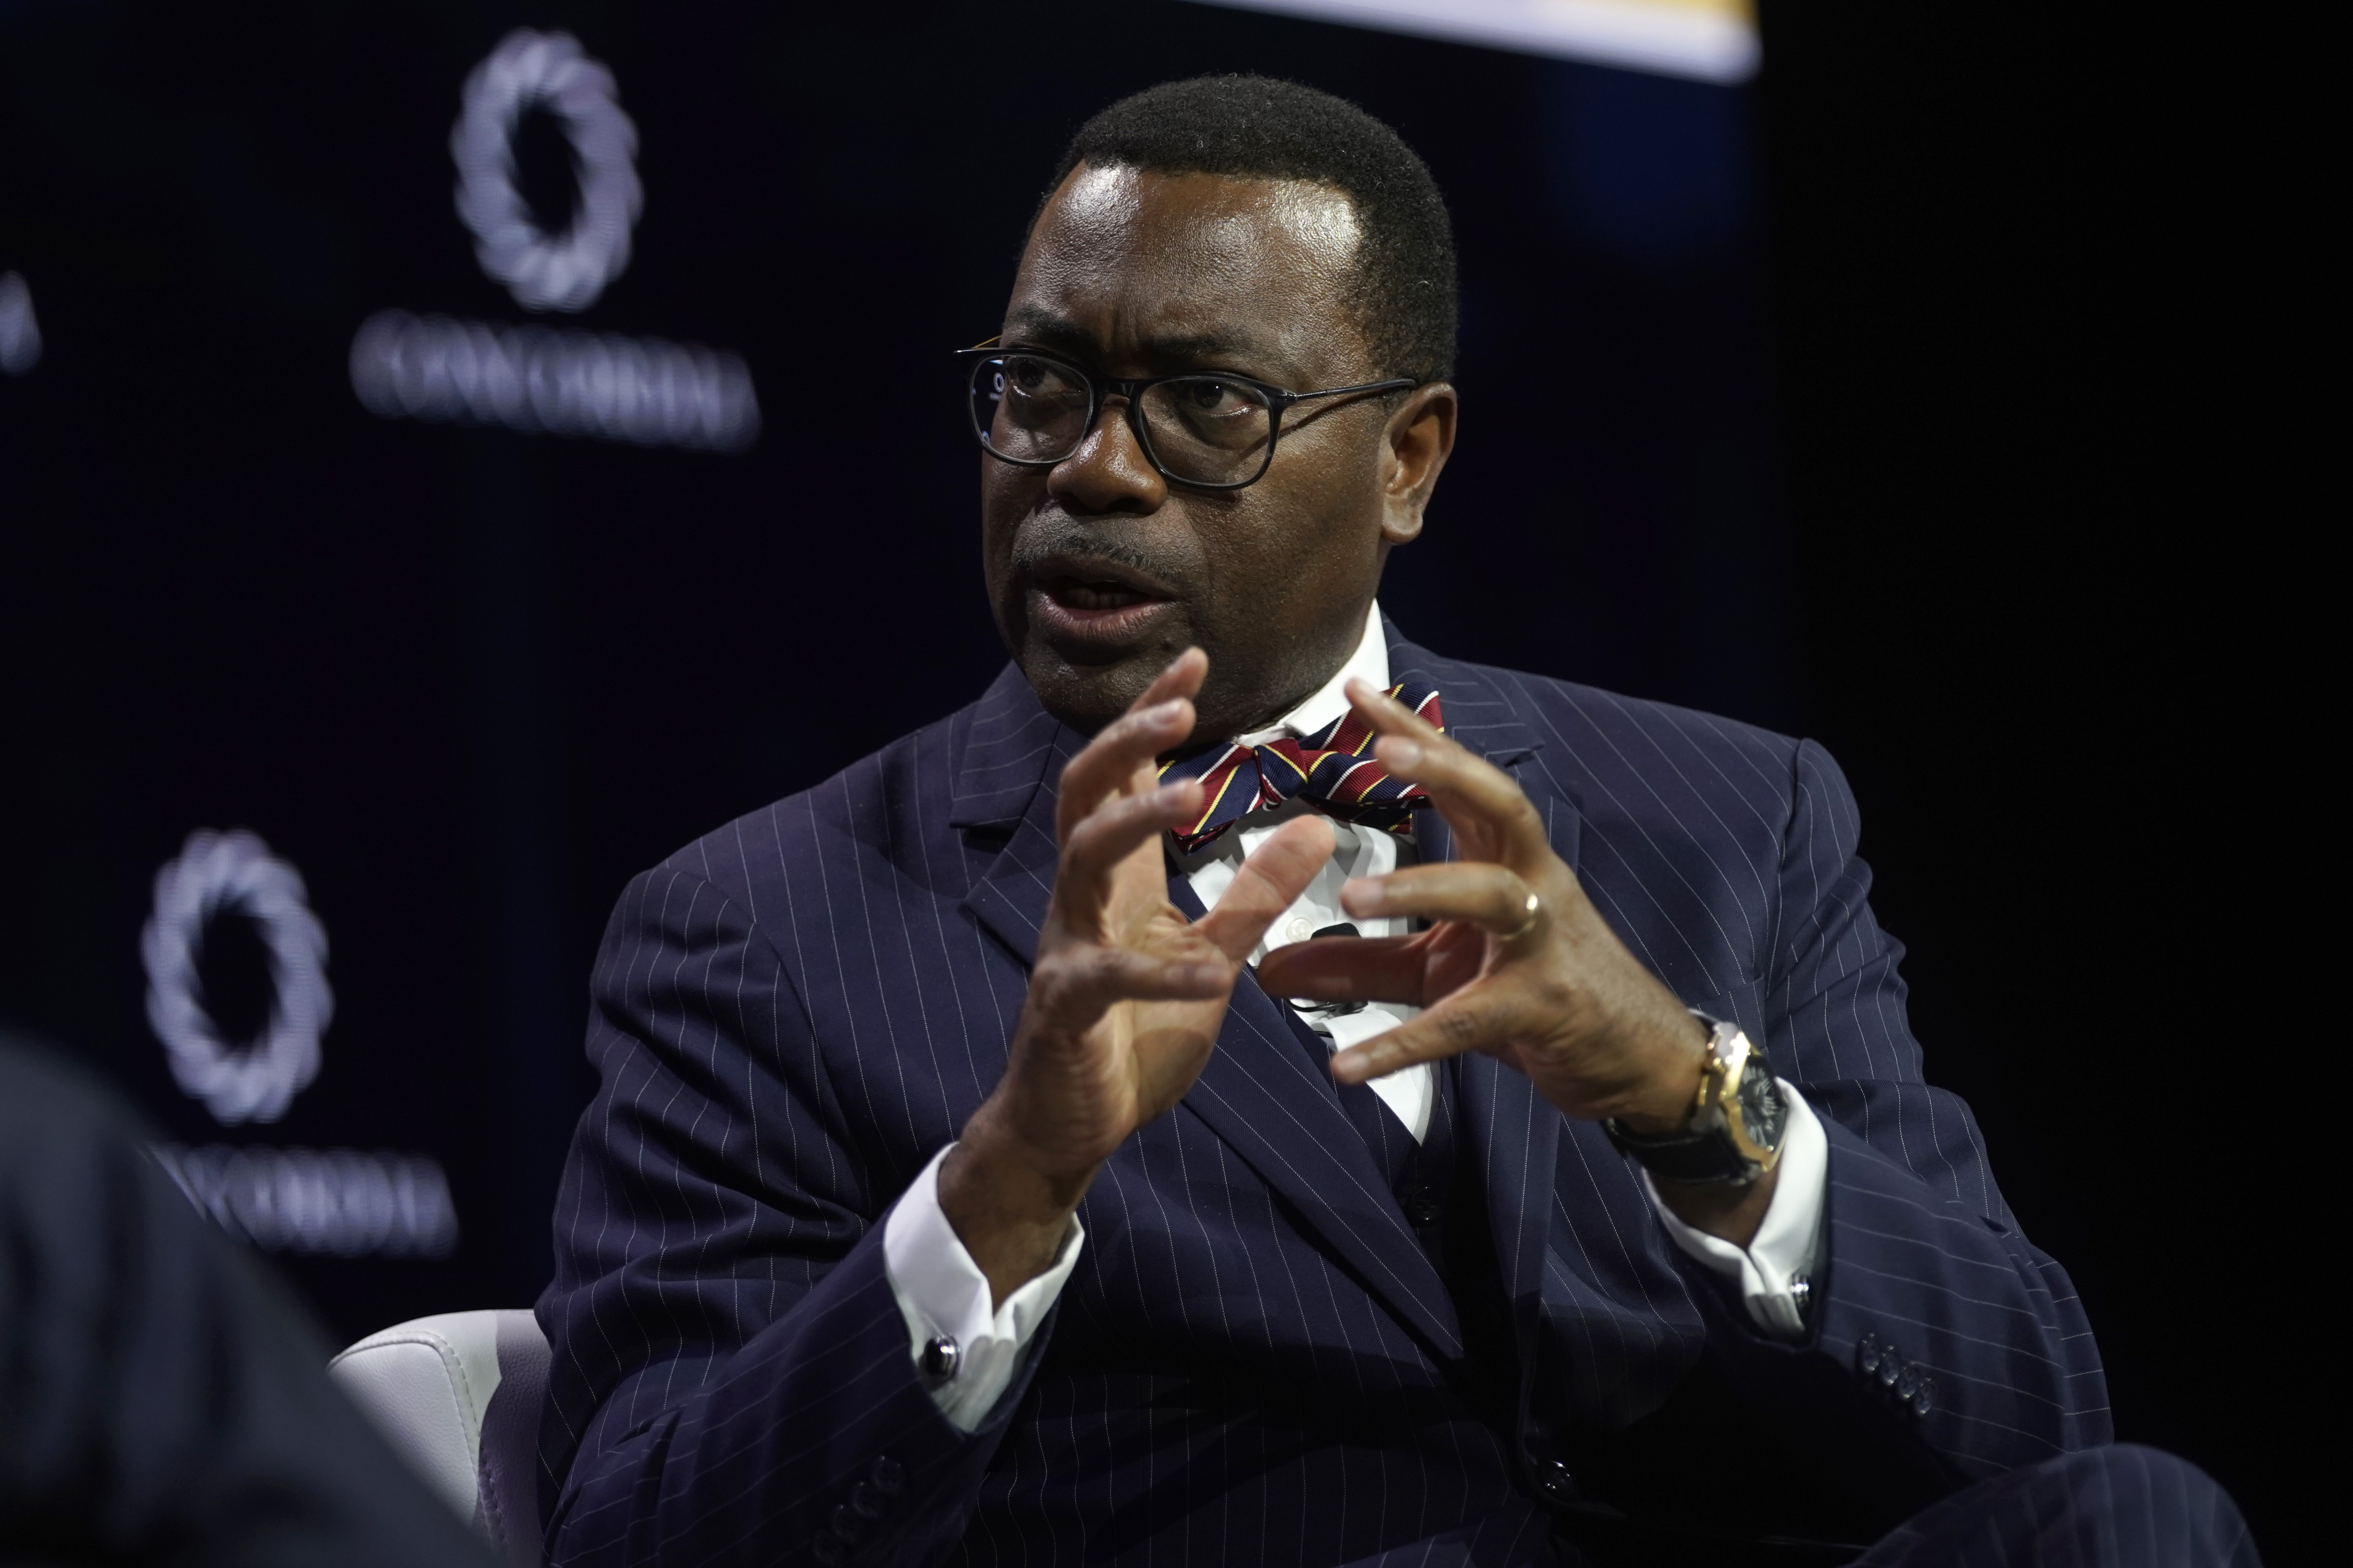 File: The investigation into Akinwumi​​​​​​​ Adesina, a former Nigerian minister for agriculture, follows calls for a probe by Washington.